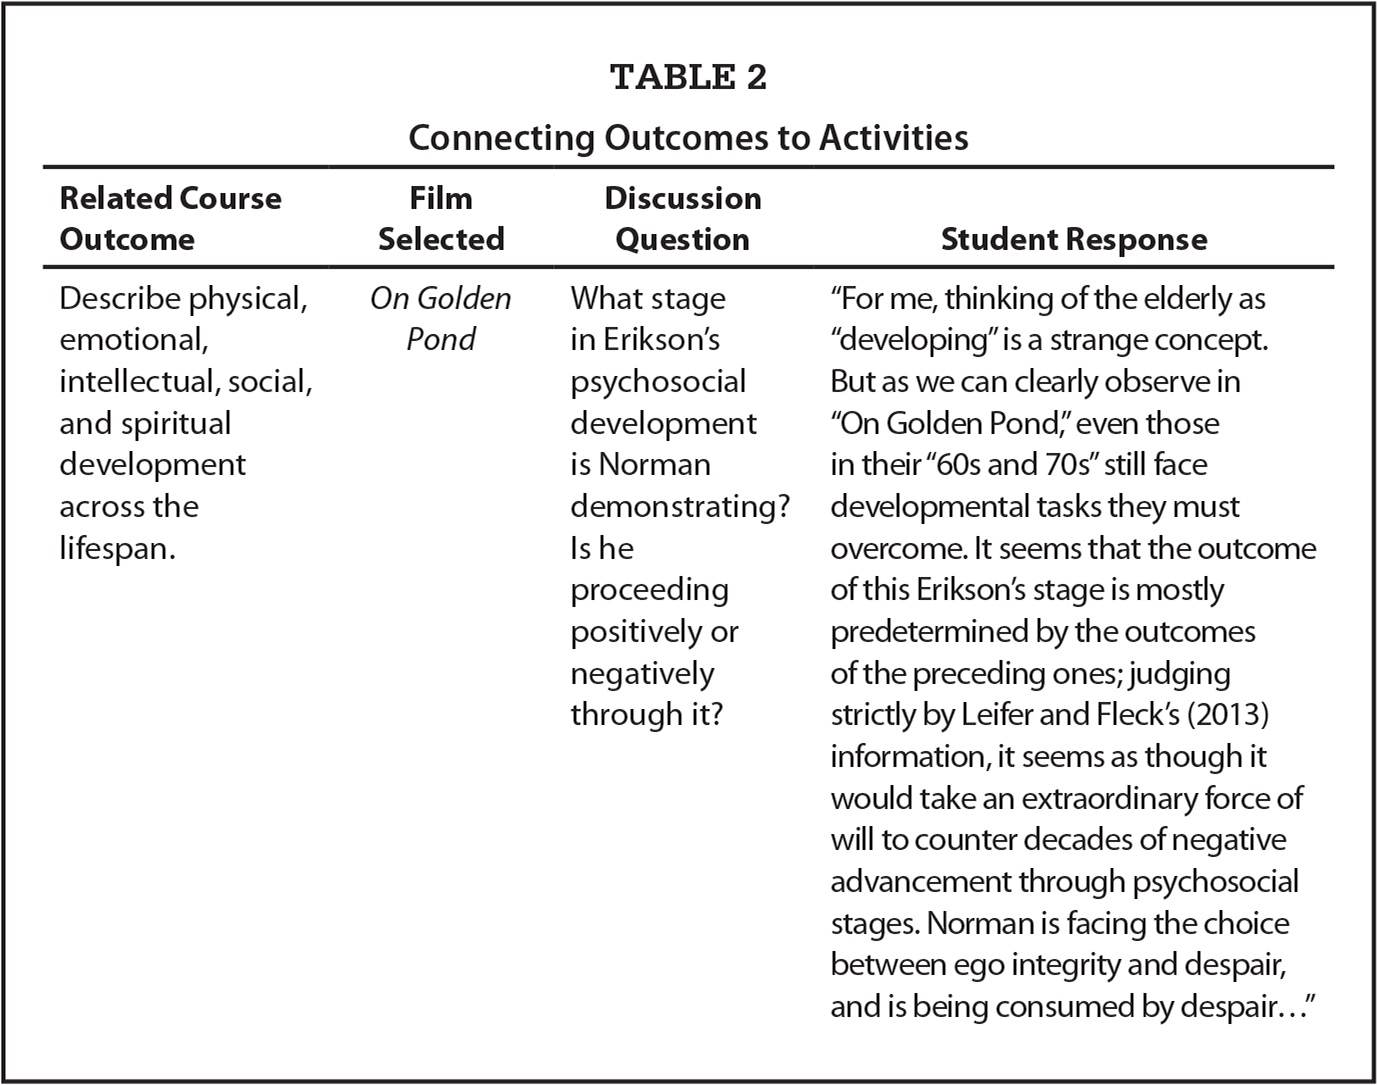 Connecting Outcomes to Activities